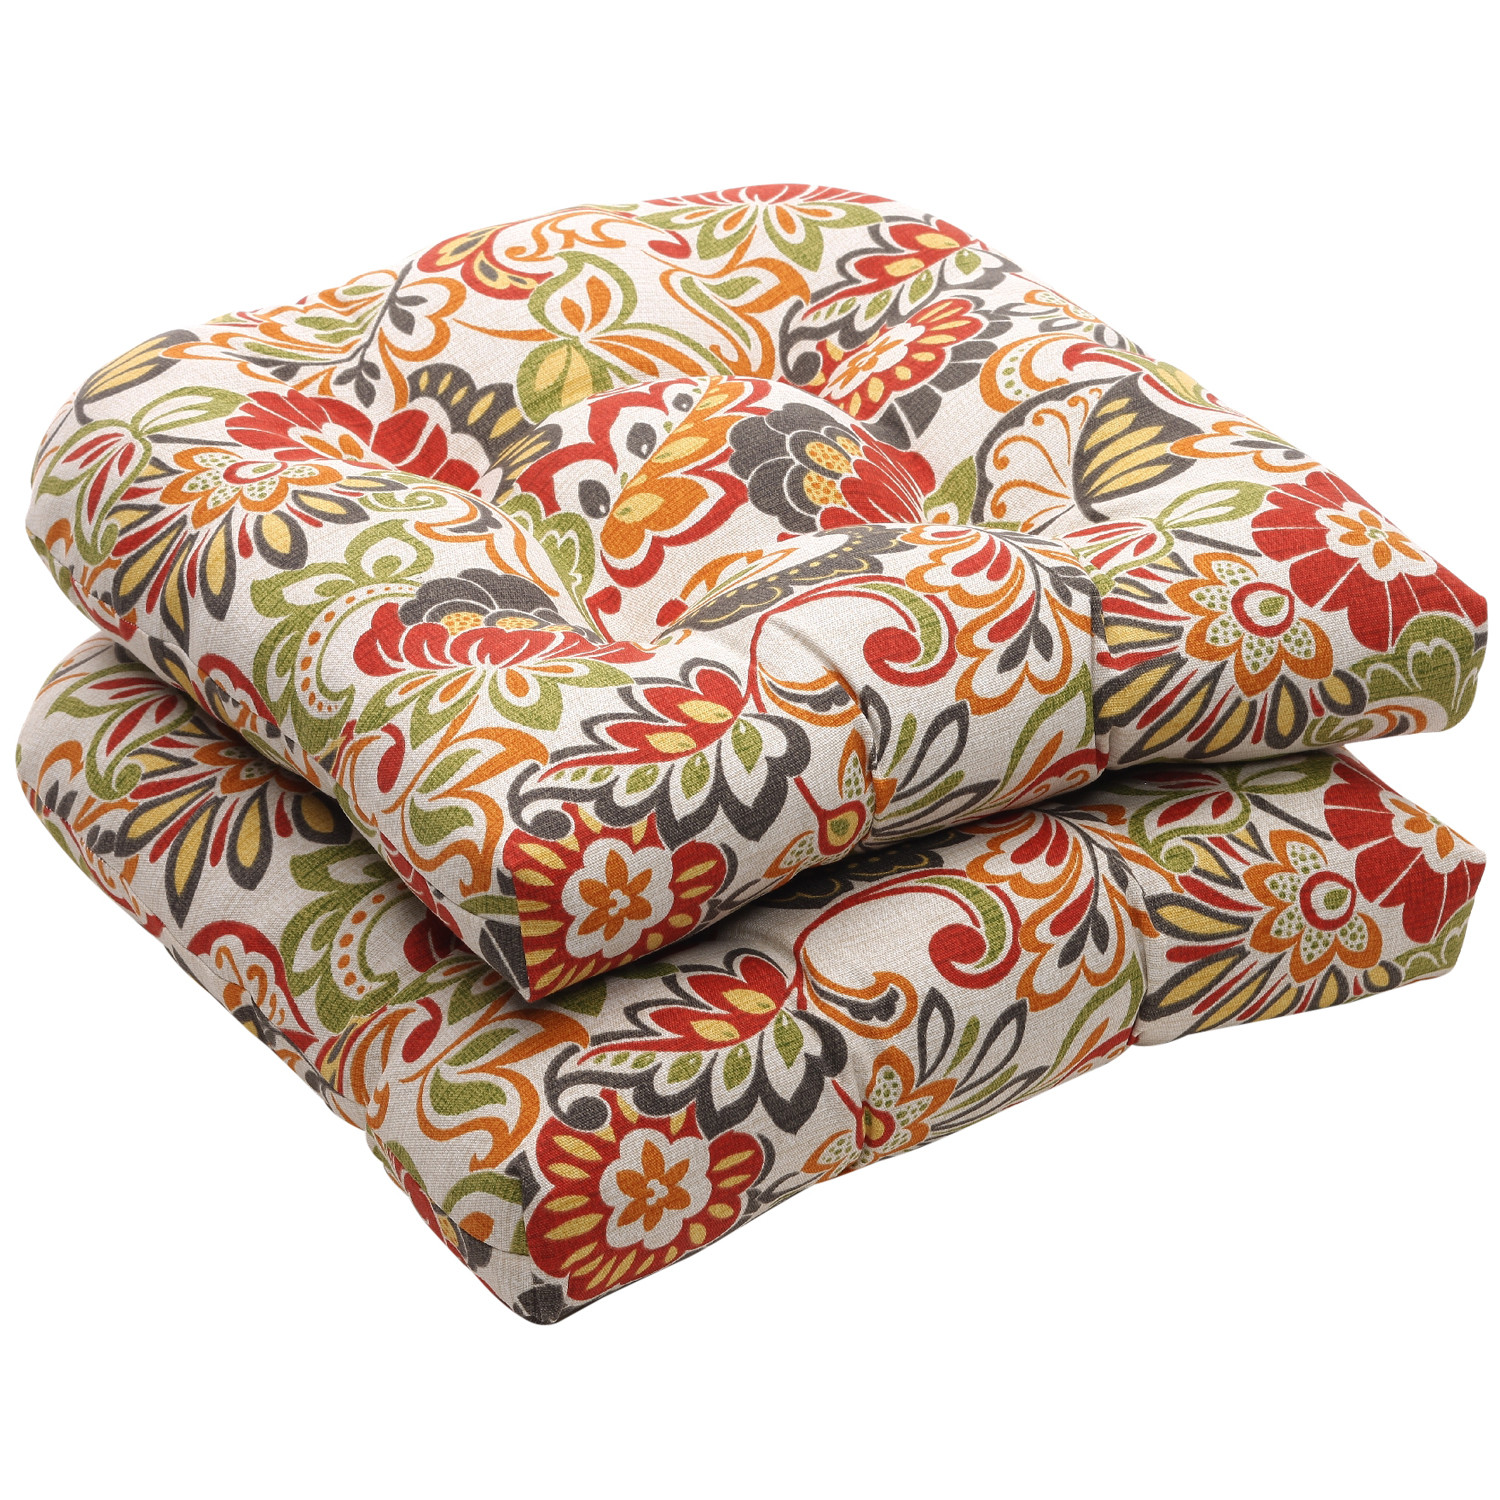 Best ideas about Walmart Patio Cushions Clearance . Save or Pin Furniture Replacement Patio Cushions Clearance Outdoor Now.